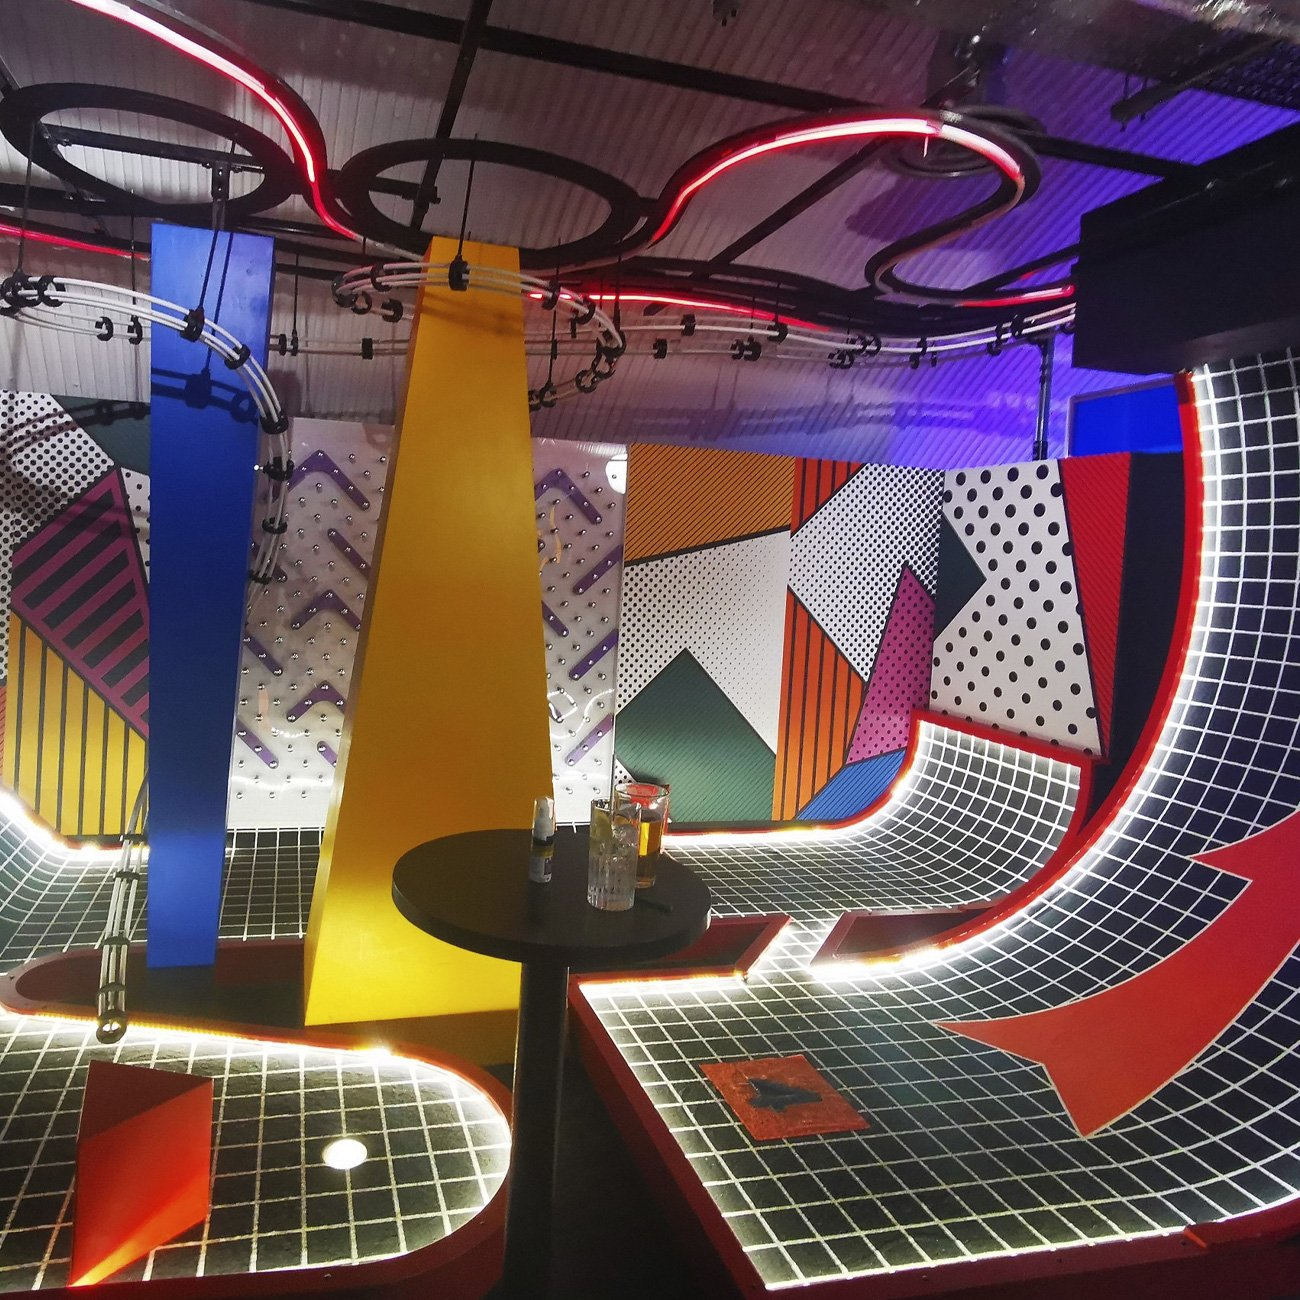 Commercial Fit out for Birdies Crazy Golf venue